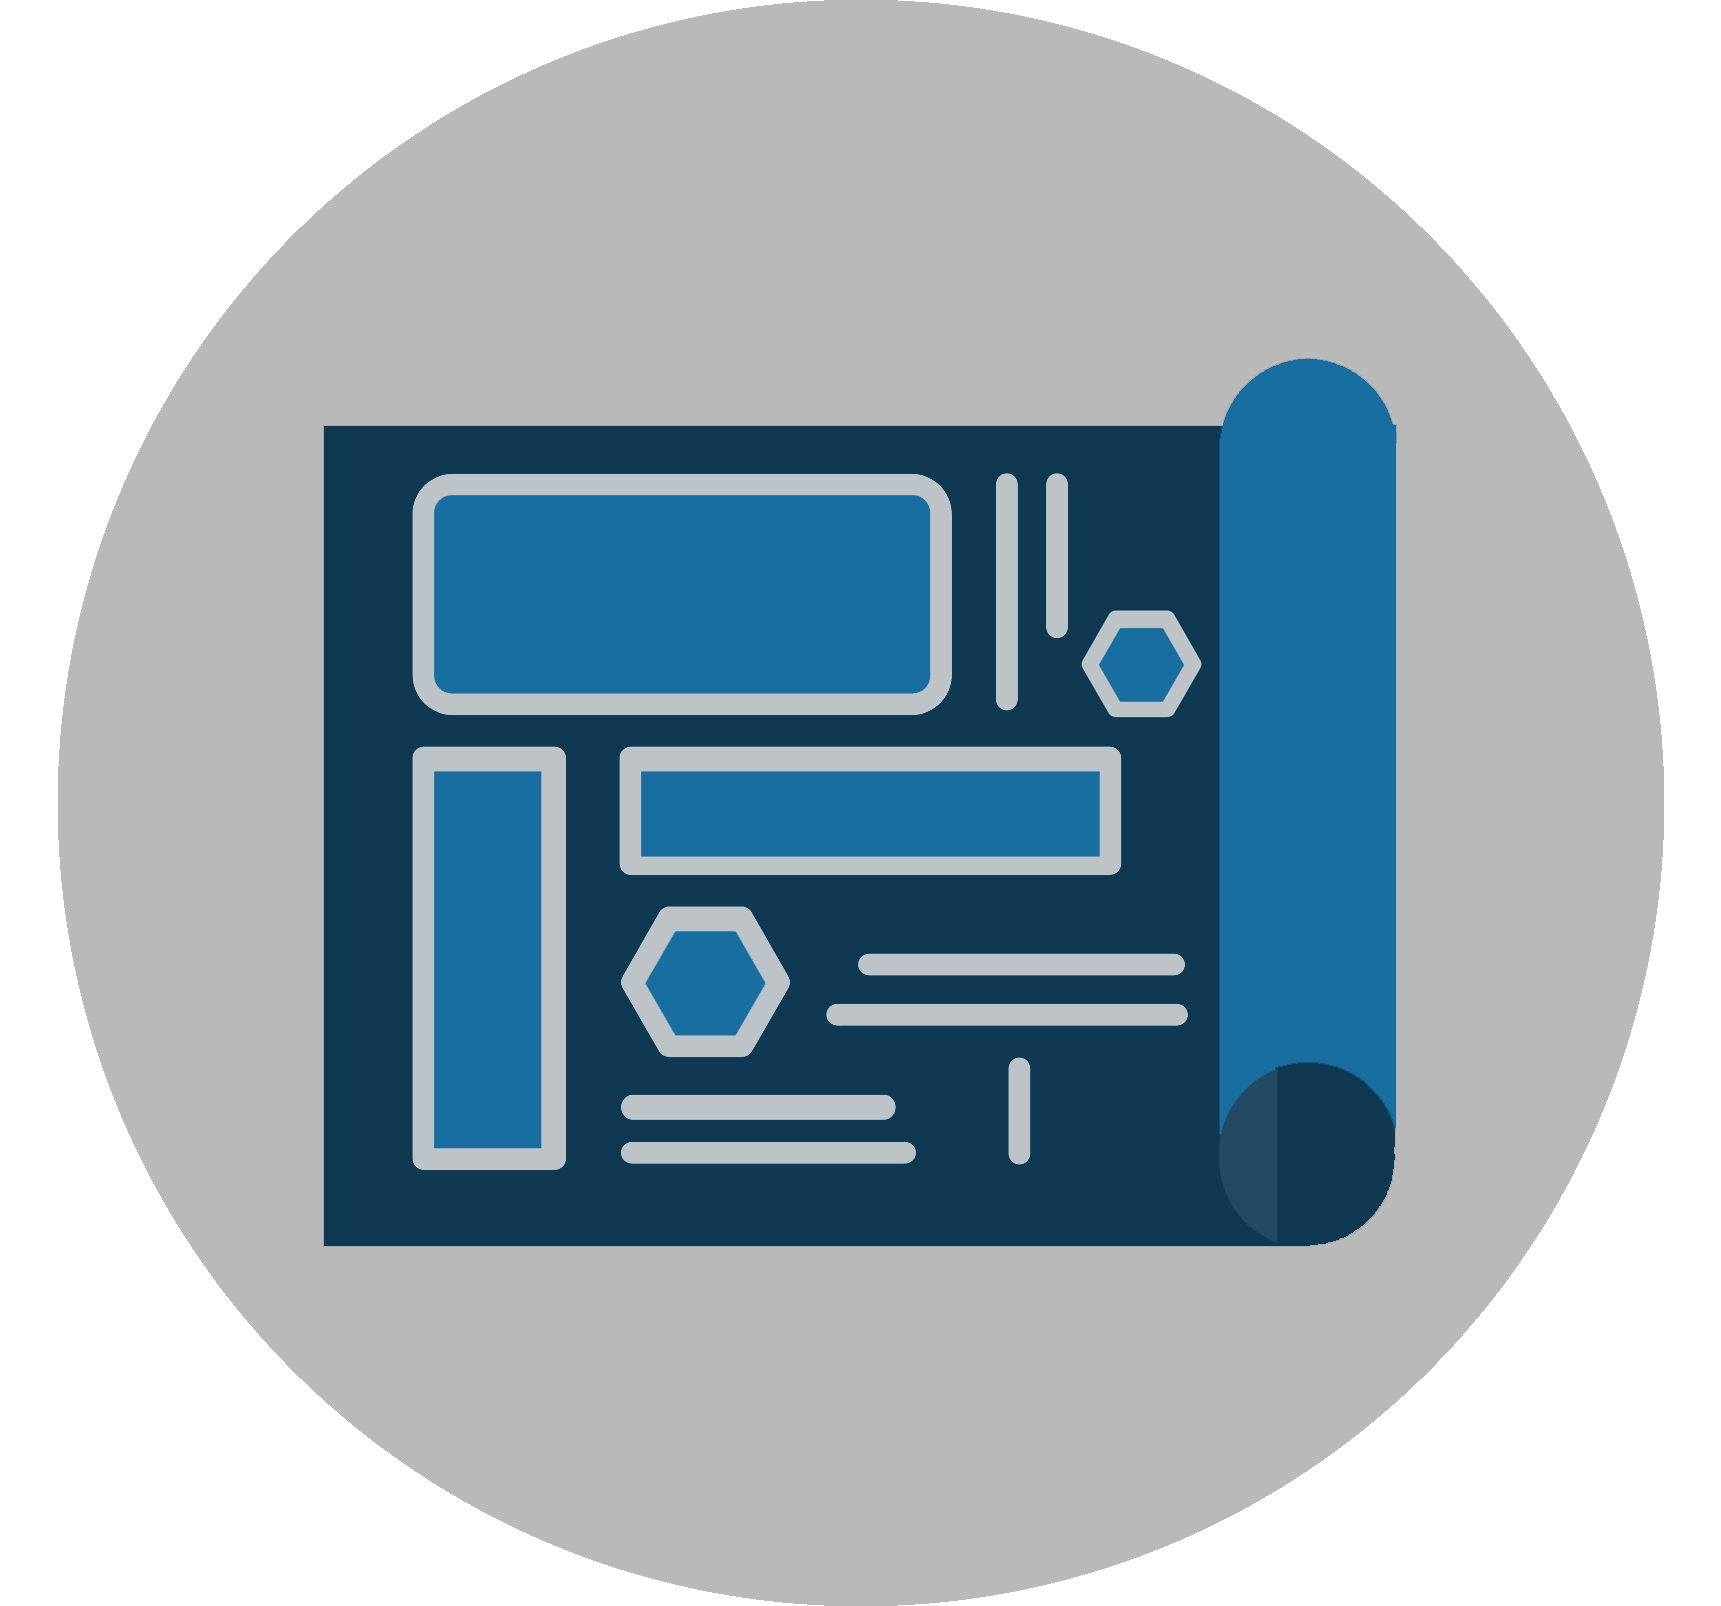 blueprint icon1.png